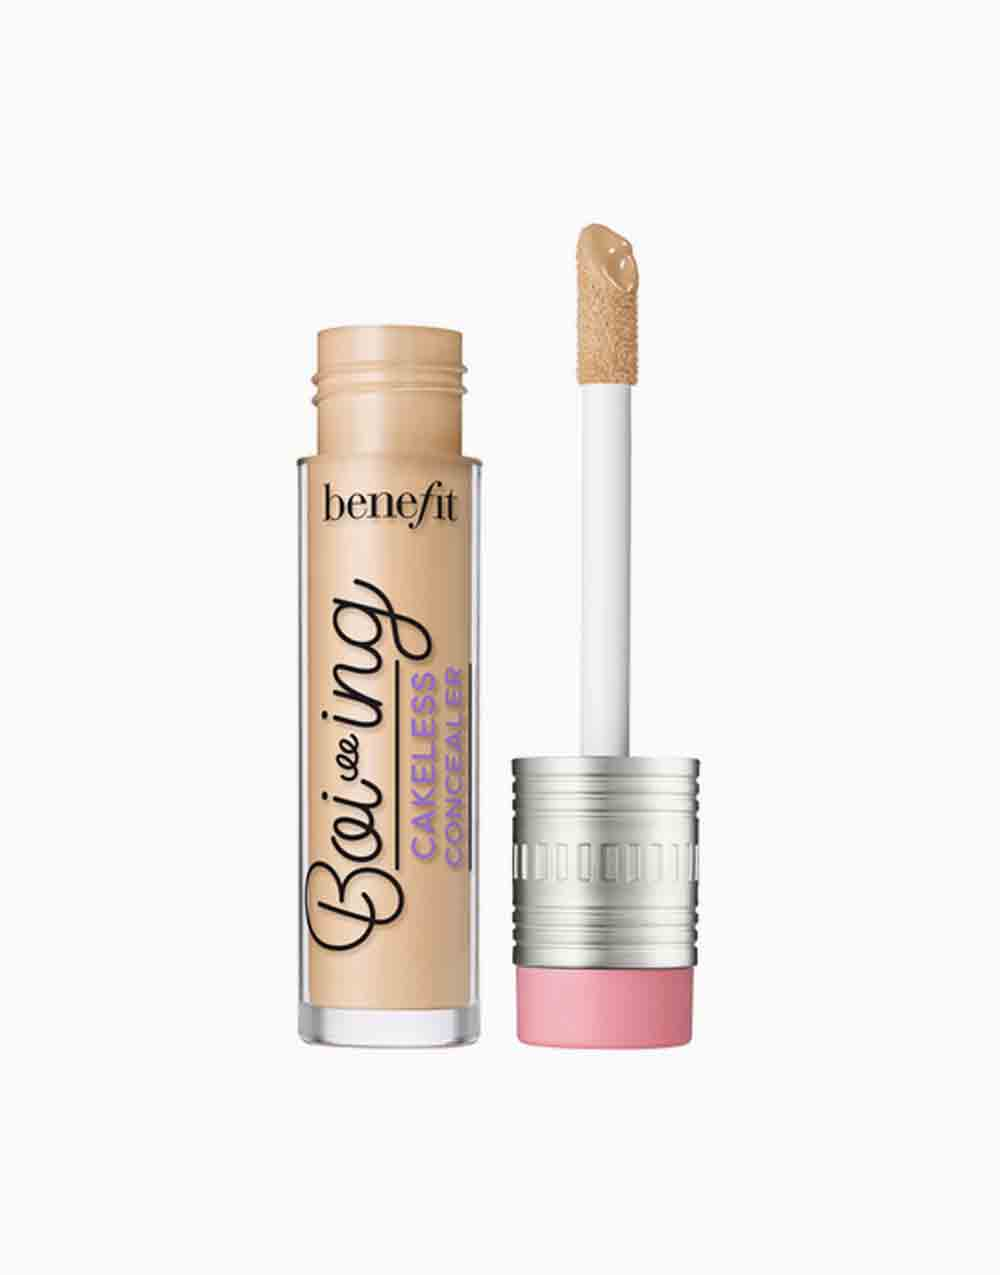 Boi-ing Cakeless Concealer by Benefit | Shade 5